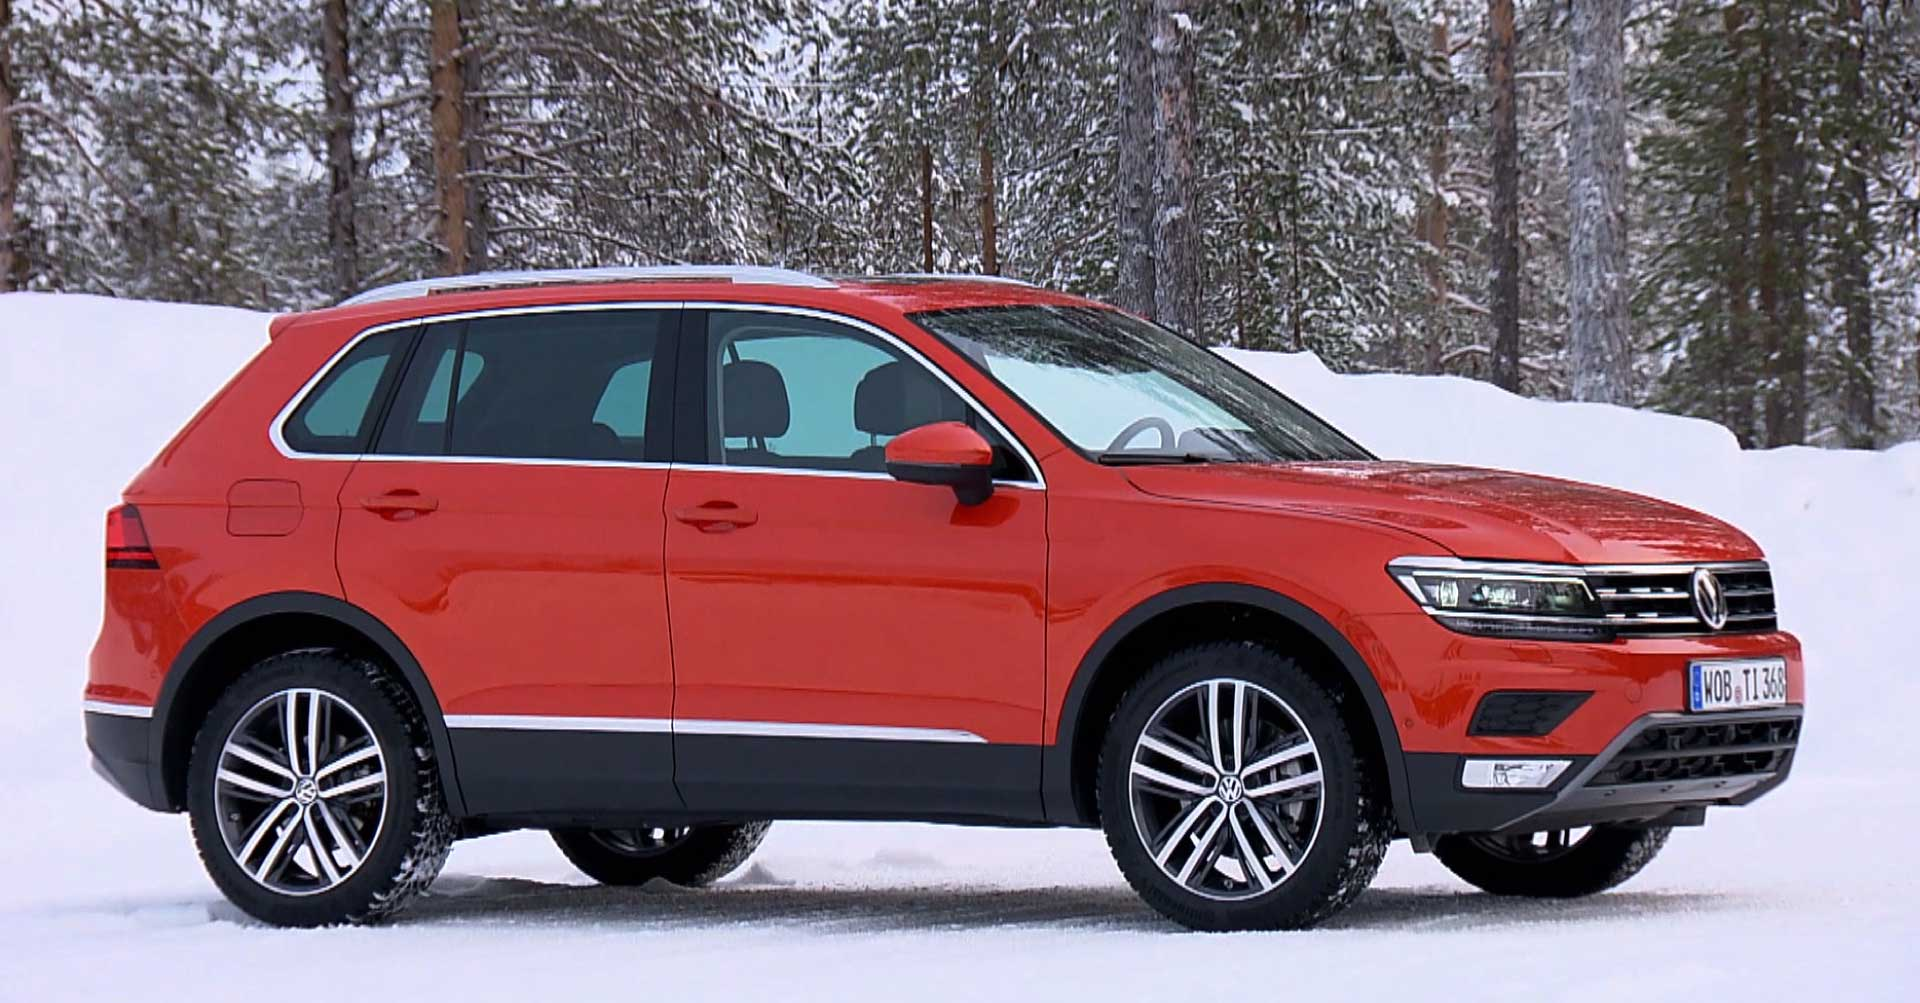 2018 VW Tiguan - Canadian Car Reviews | Driving Television